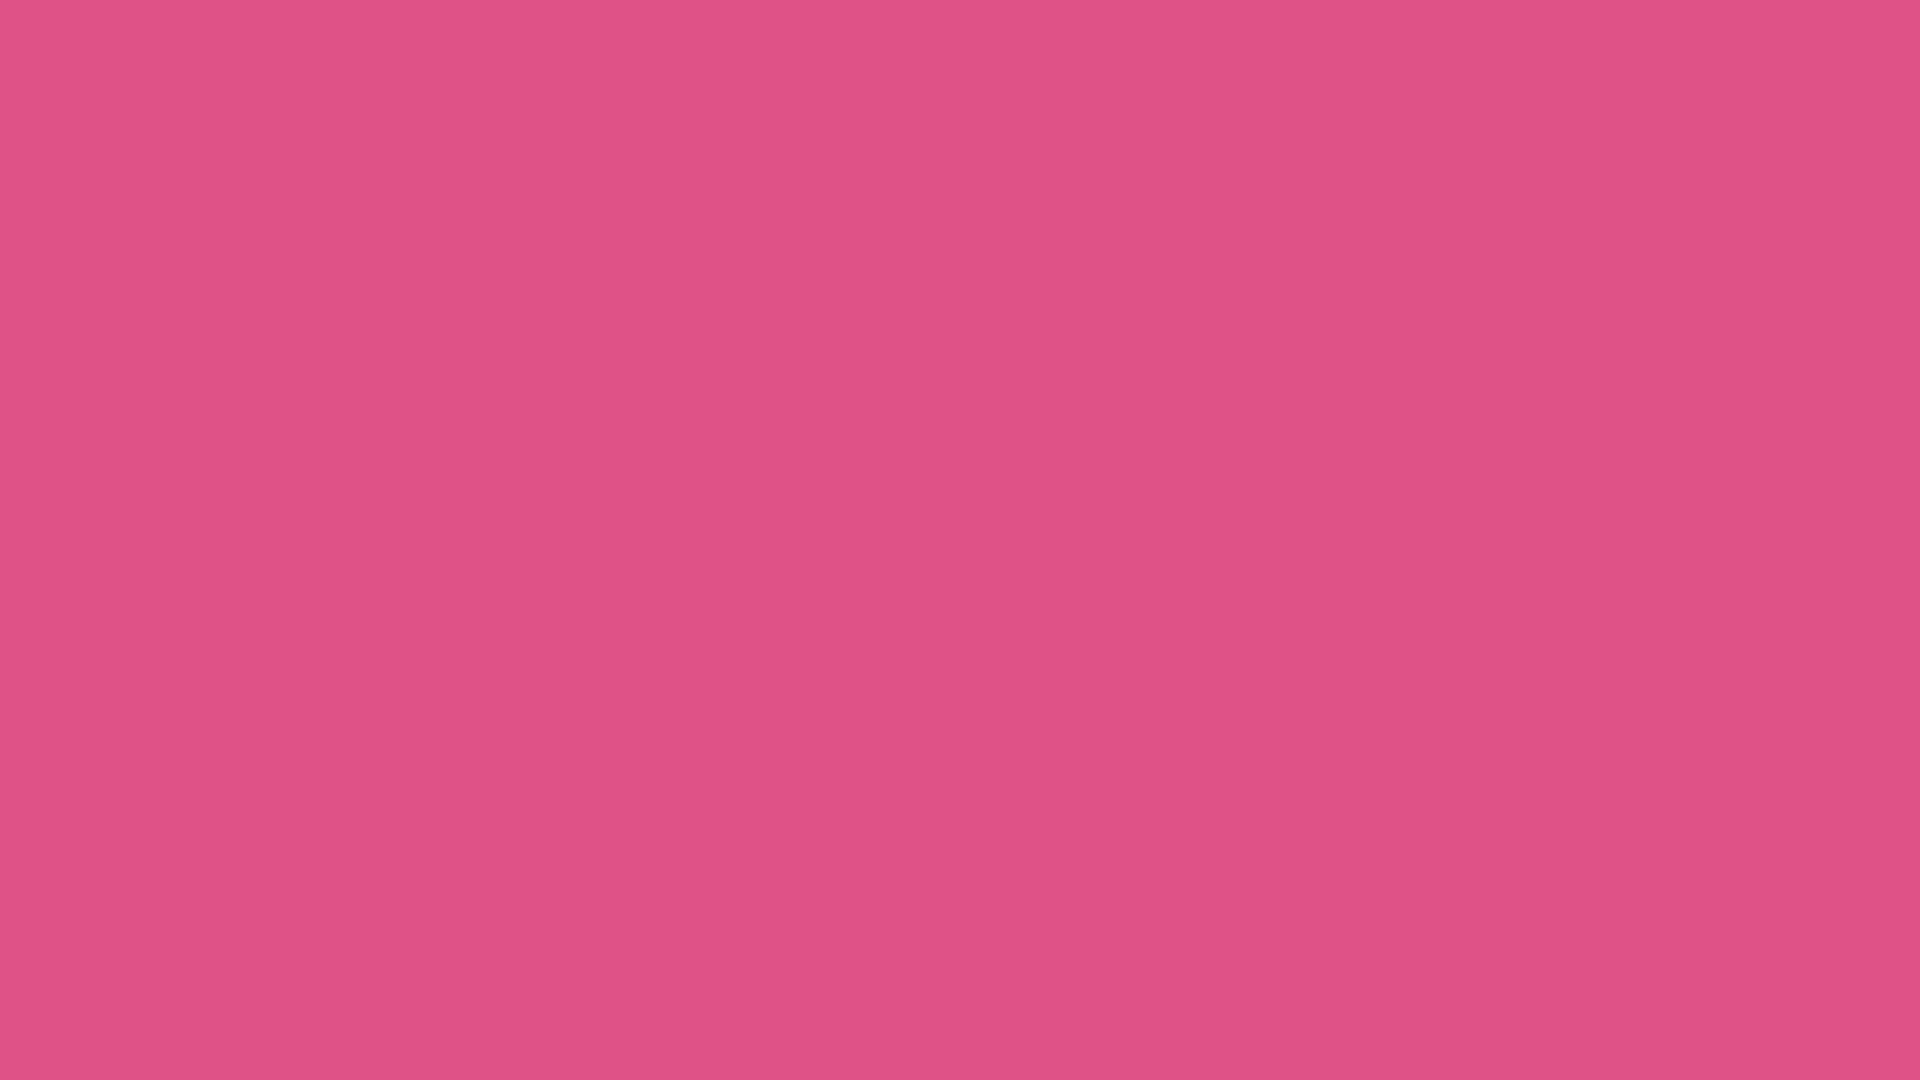 1920x1080 Fandango Pink Solid Color Background